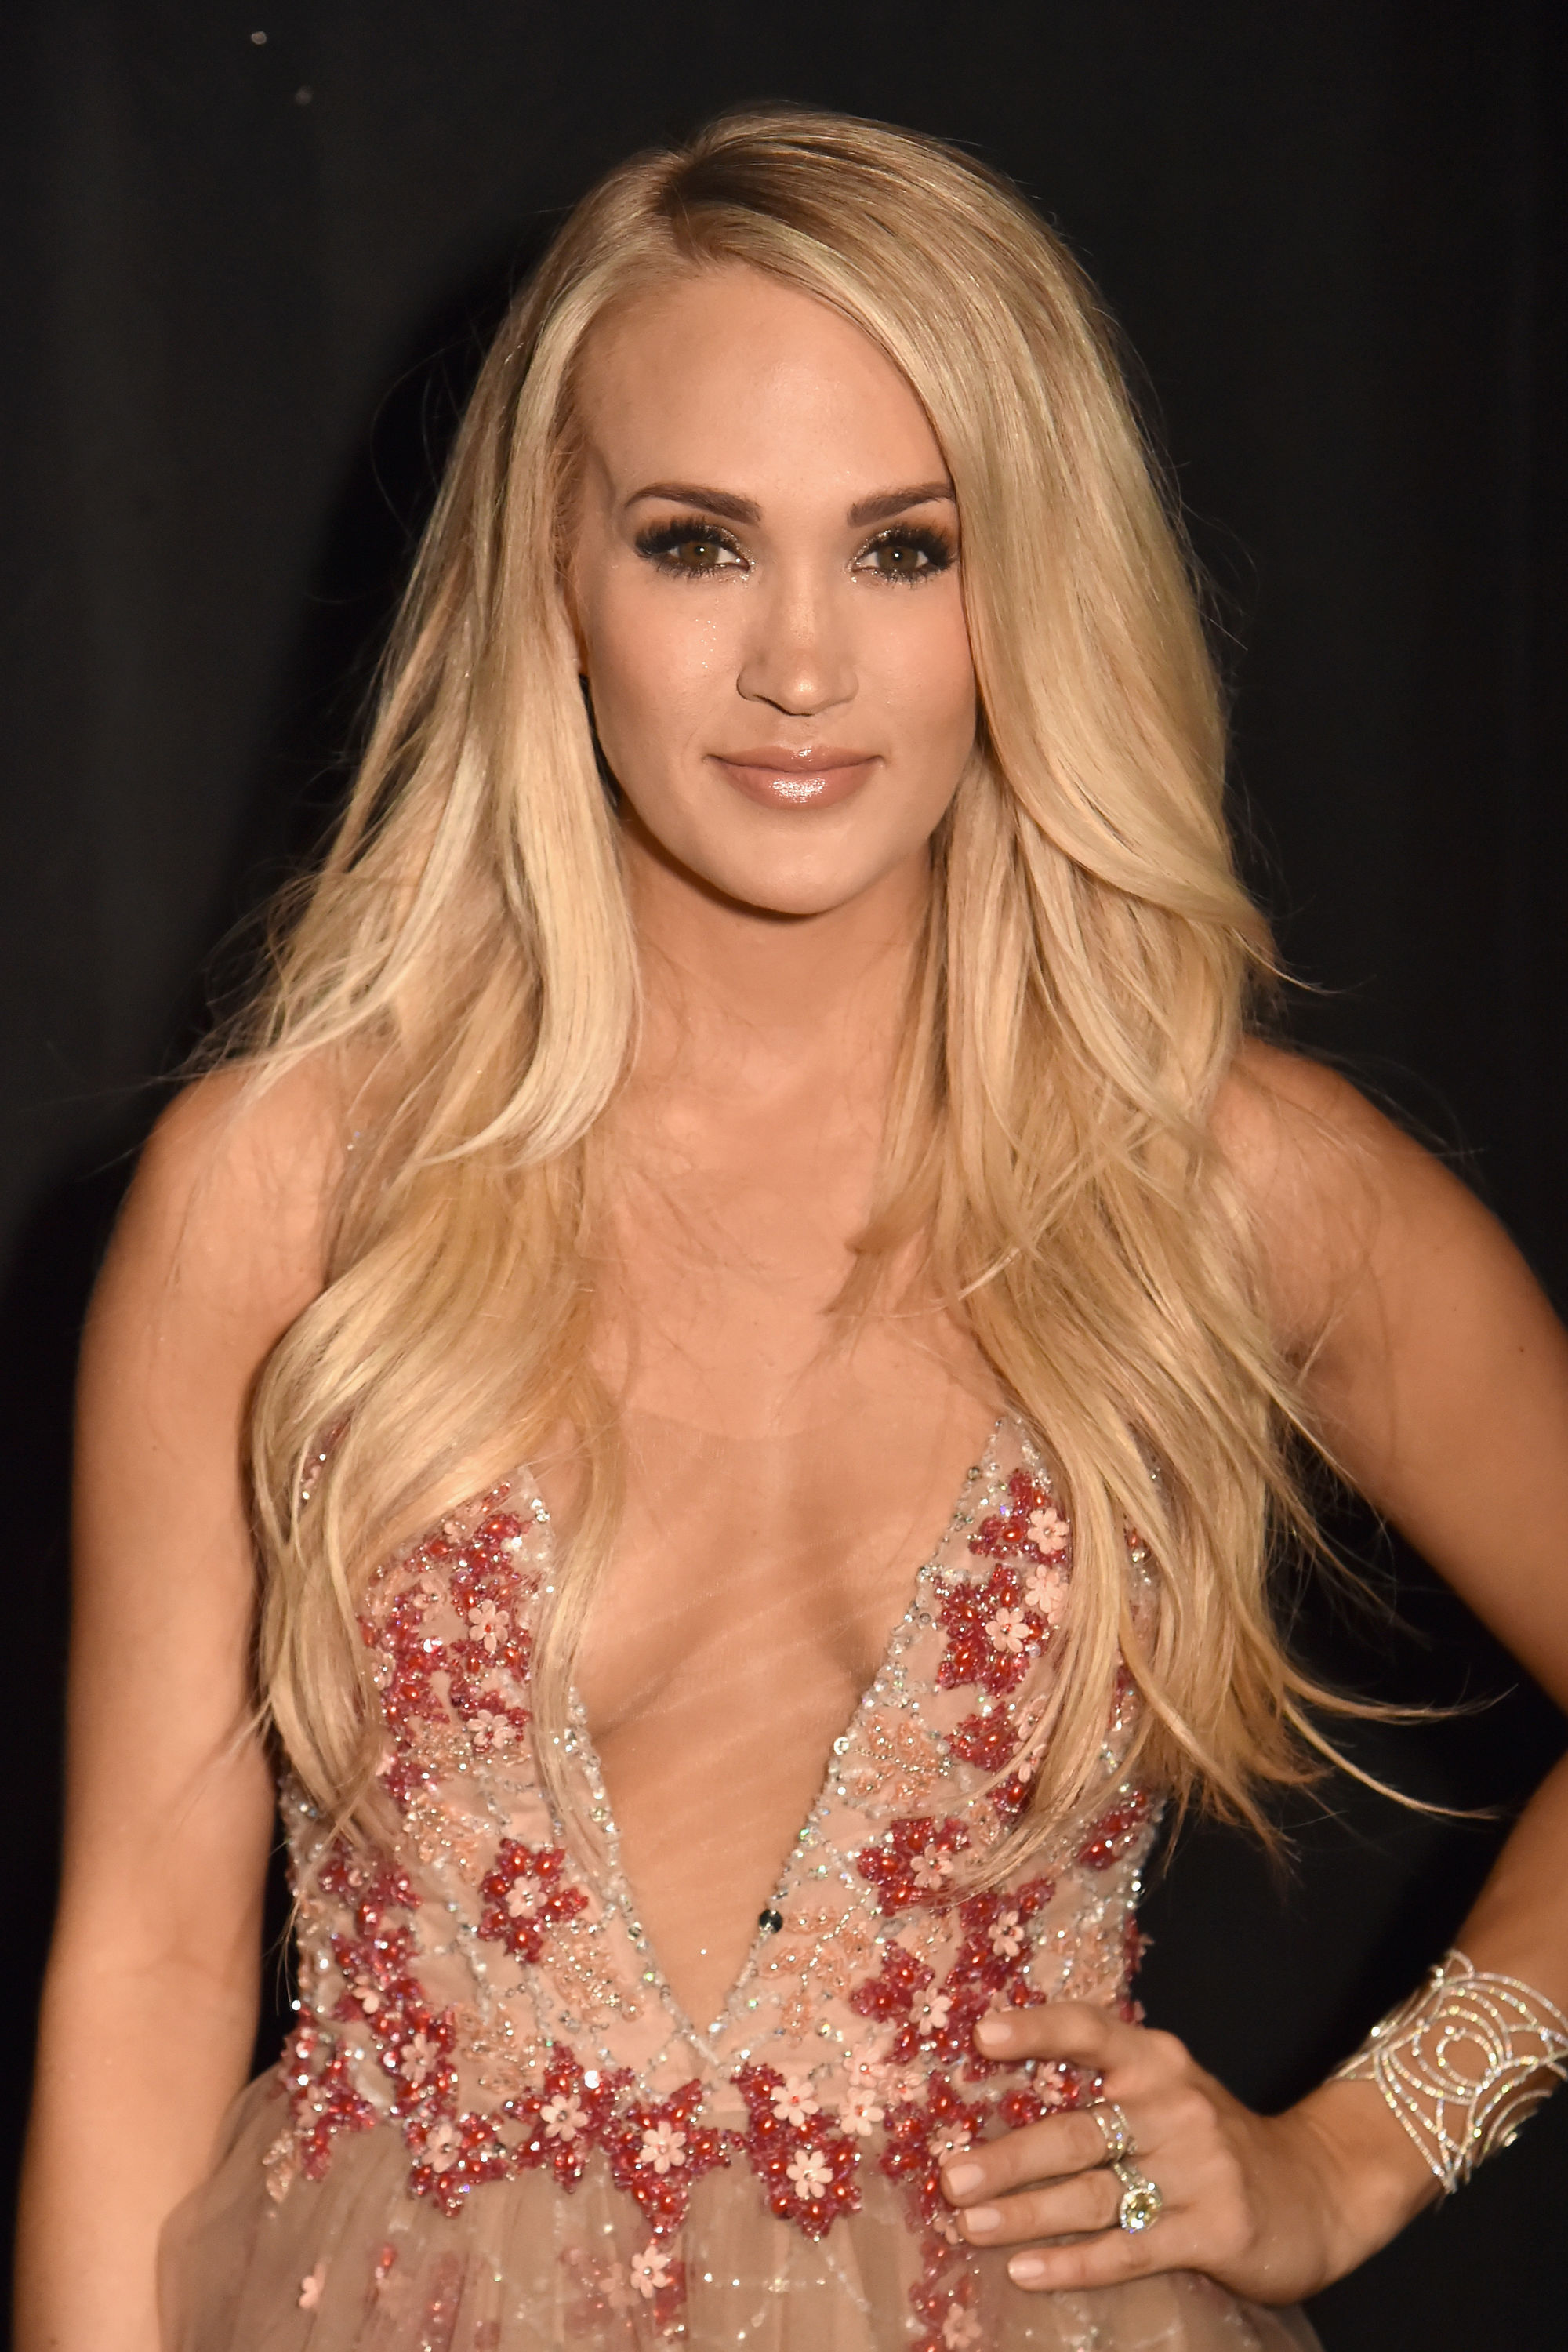 Carrie Underwood Debuts Her Baby Bump for the First Time in a Sparkly Gown